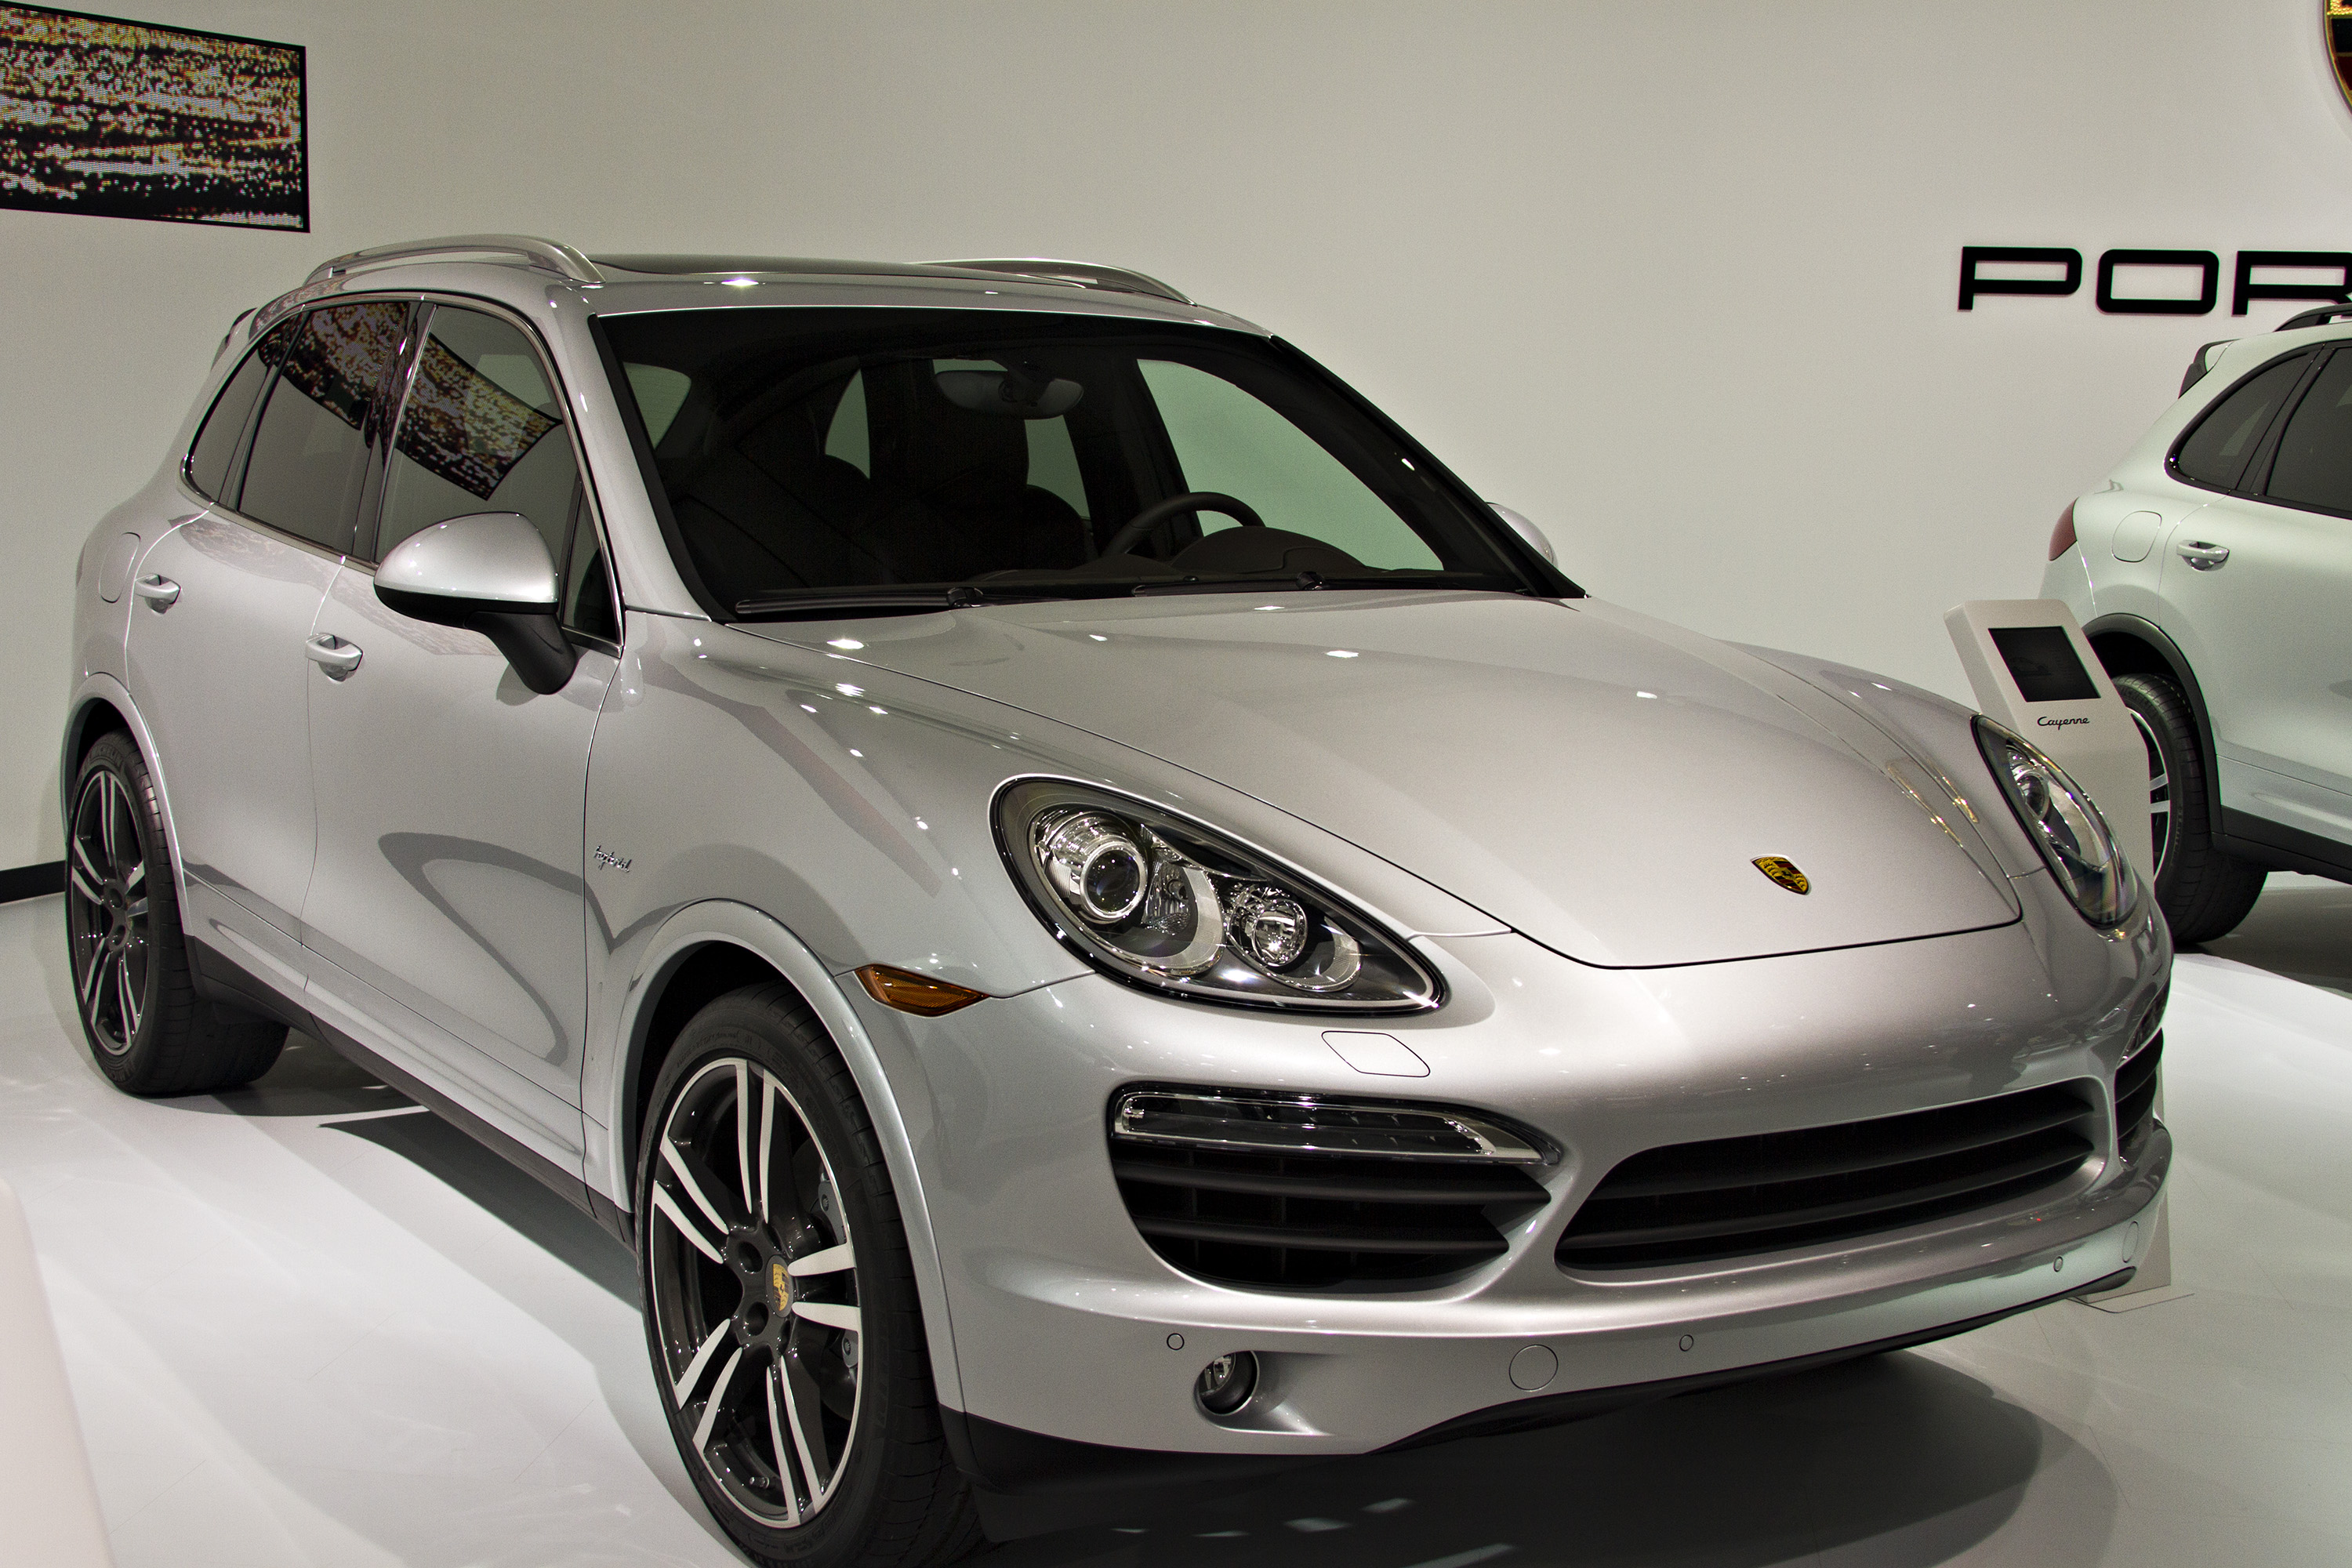 2012-porsche-cayenne-hybrid-los-angeles-auto-show-by-melissa-hincha-ownby